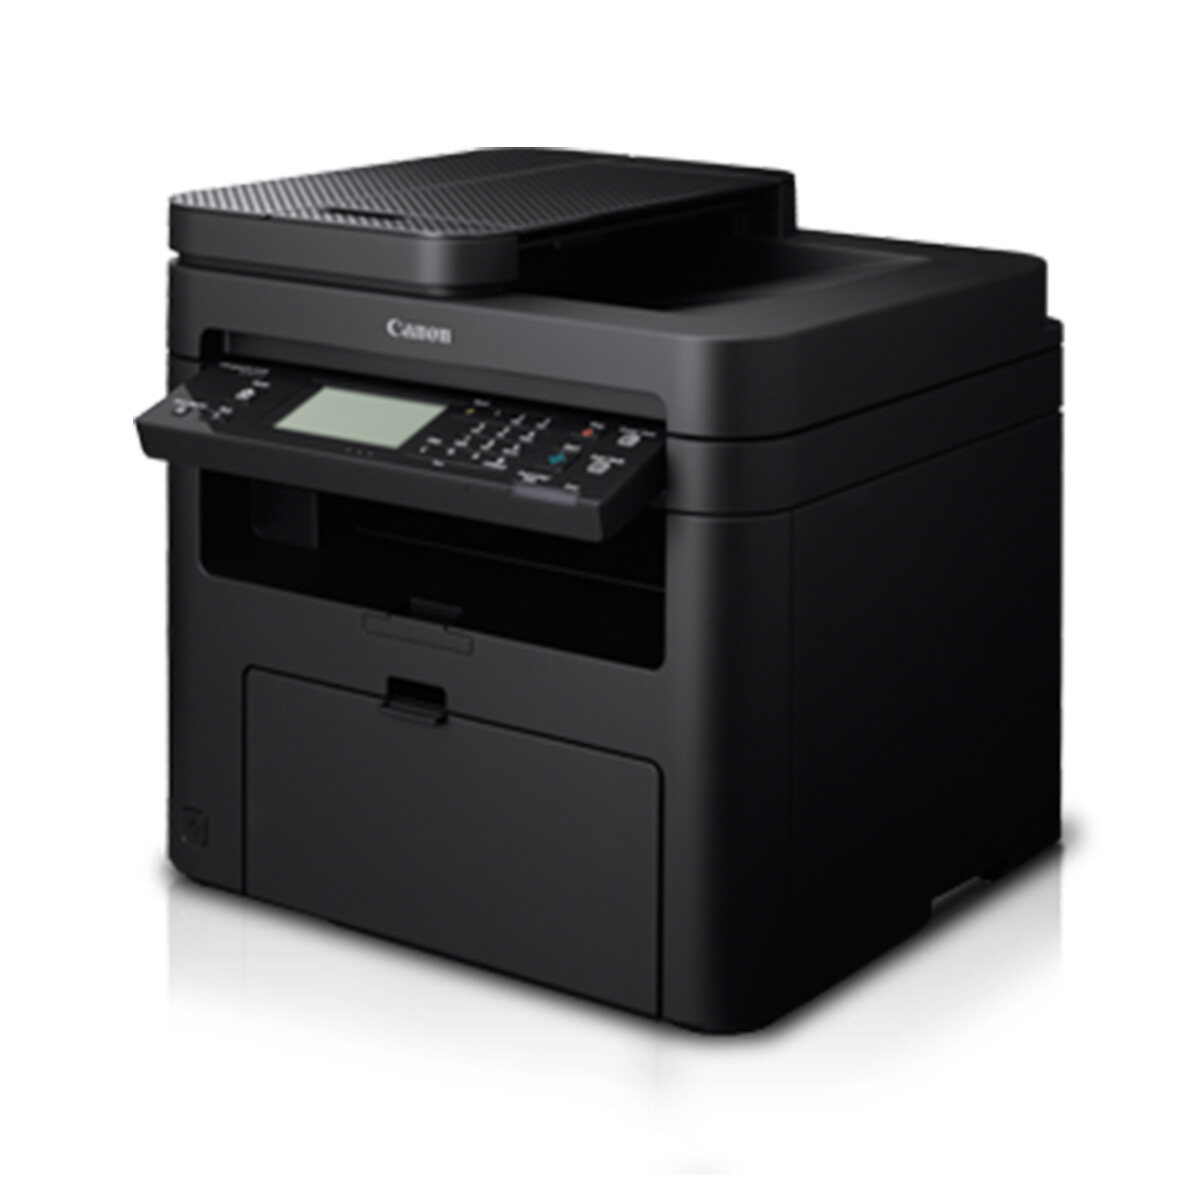 Canon  imageCLASS MF235 Compact All-in-One Mono Printer (Print, Copy, Scan, Fax) with ADF, Print, Scan, Copy, Fax